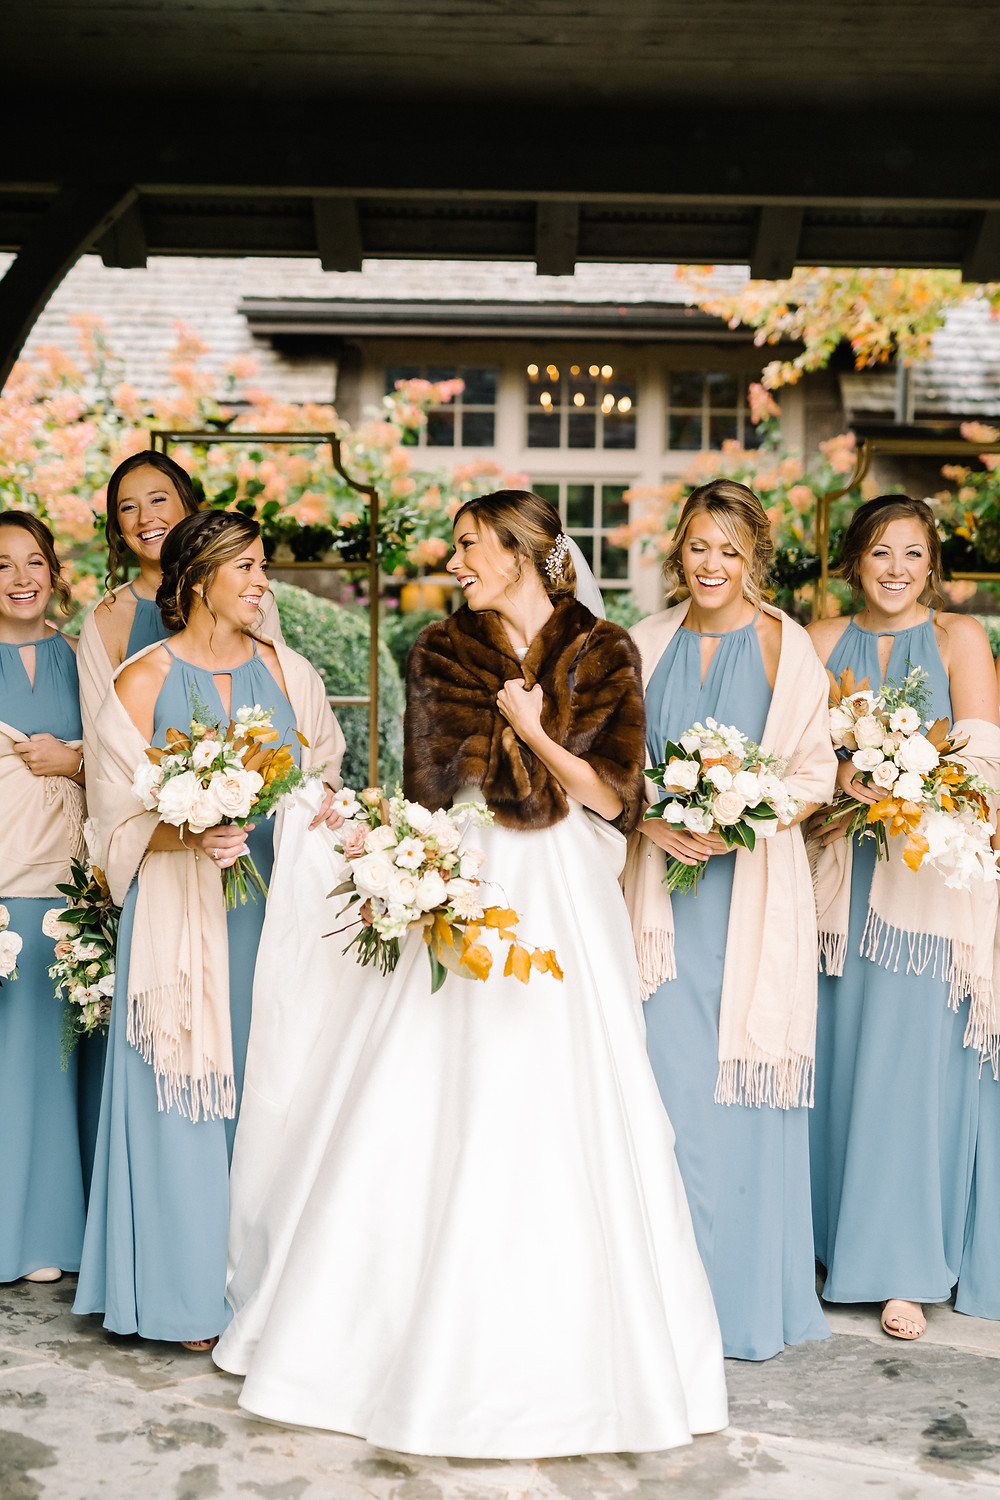 bridal party highlands nc wedding venue